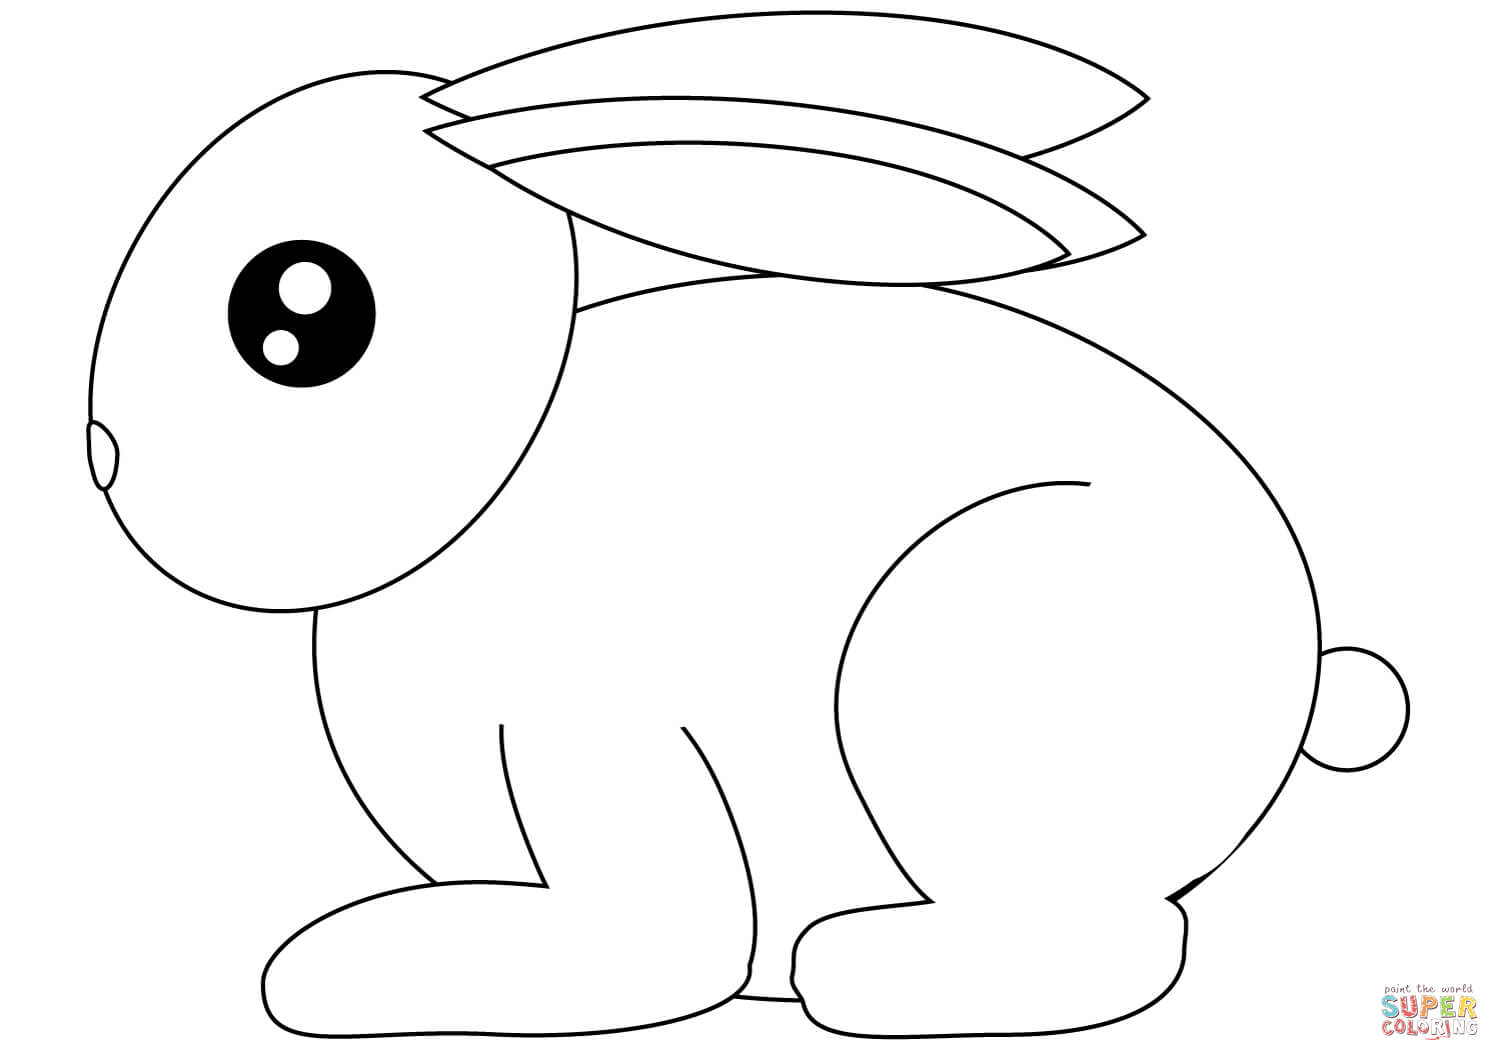 coloring pictures rabbit free printable rabbit coloring pages for kids pictures rabbit coloring 1 1